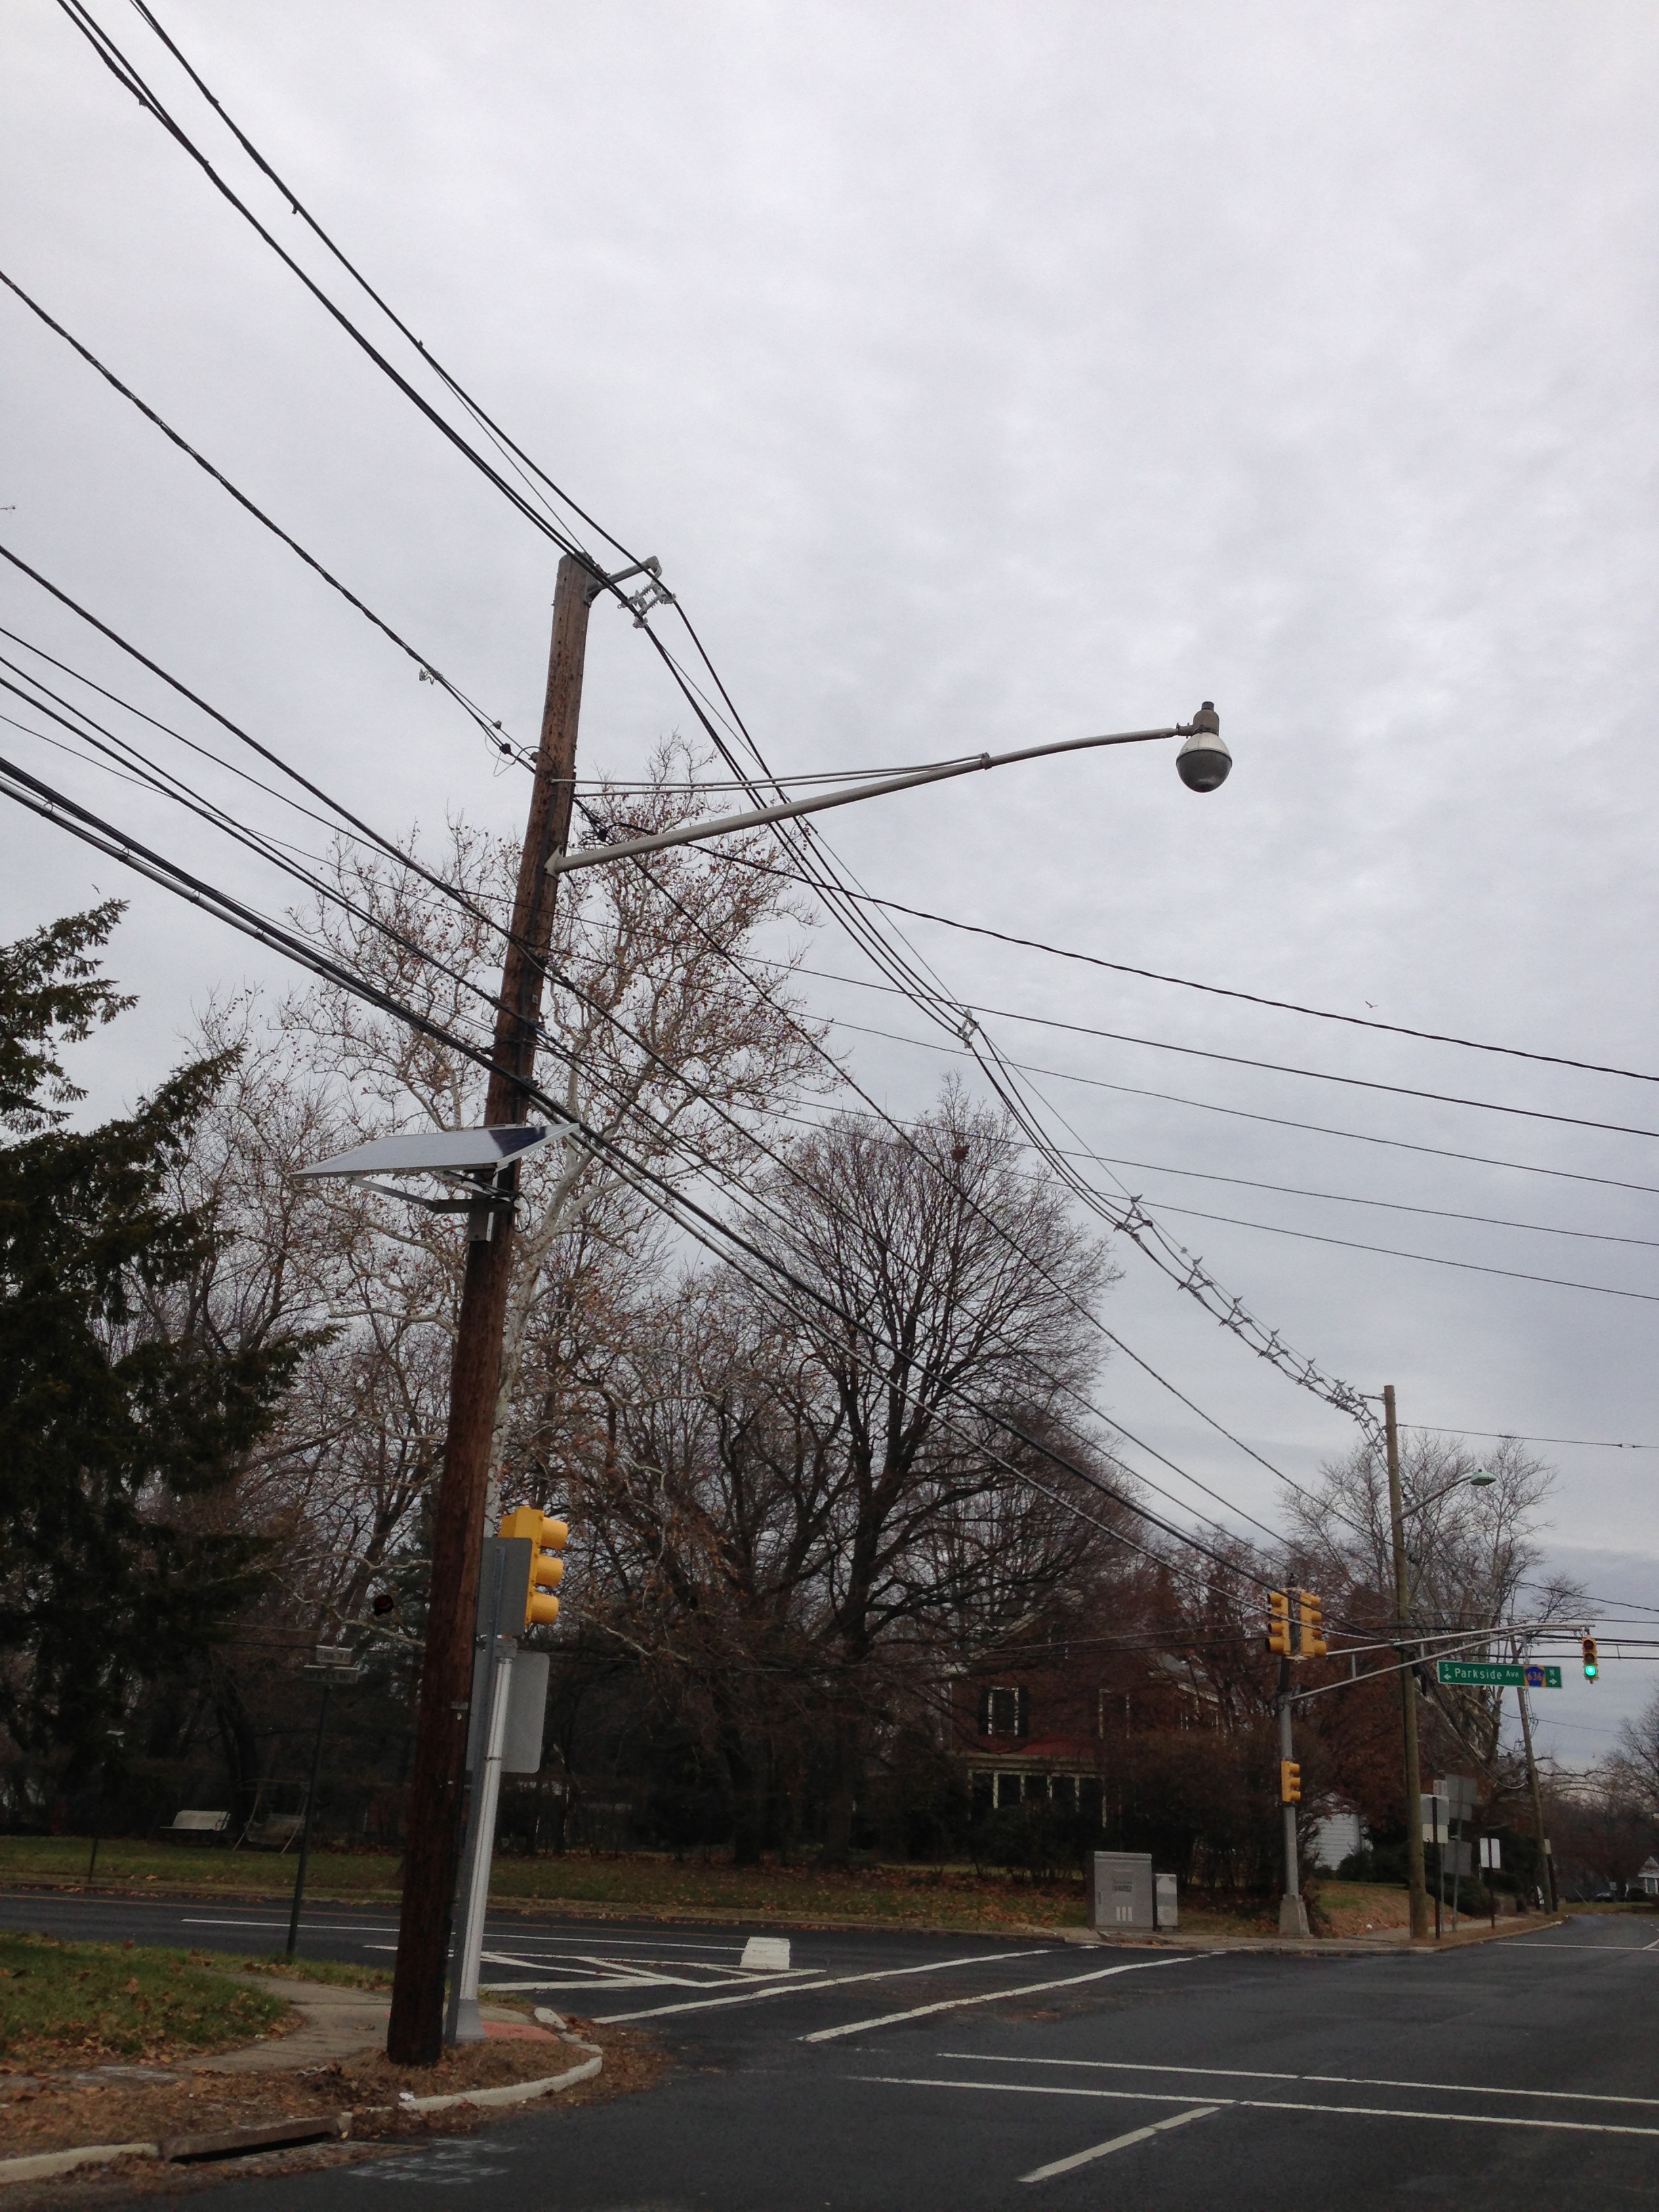 File:2014-12-28 12 21 24 Utility pole, street light and ...